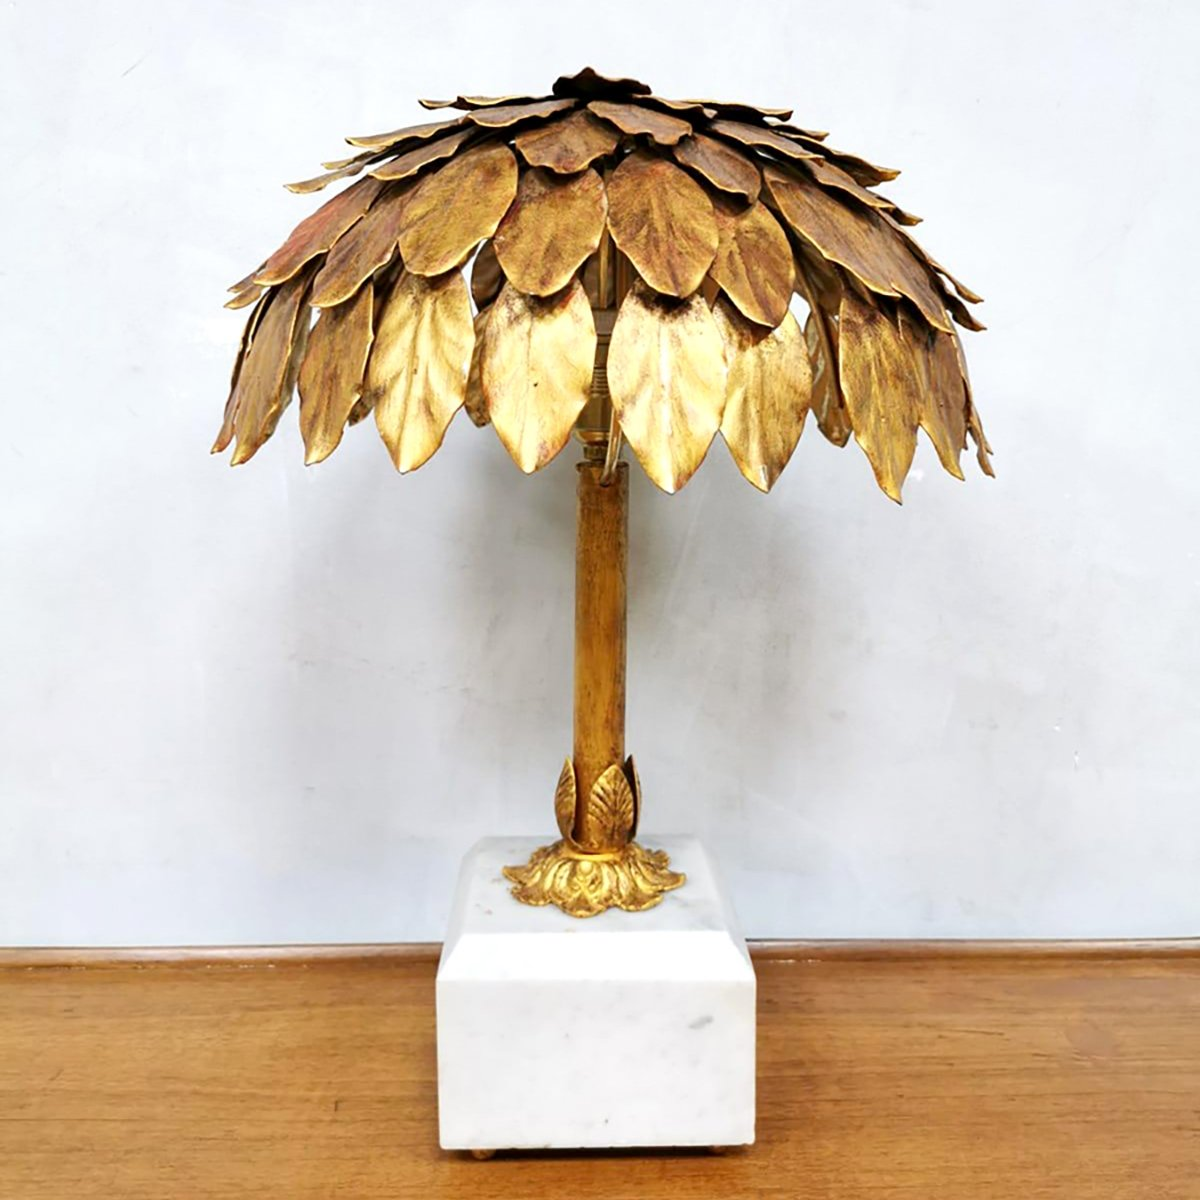 Midcentury Design Gold Gilded Palm Tree Table Lamp